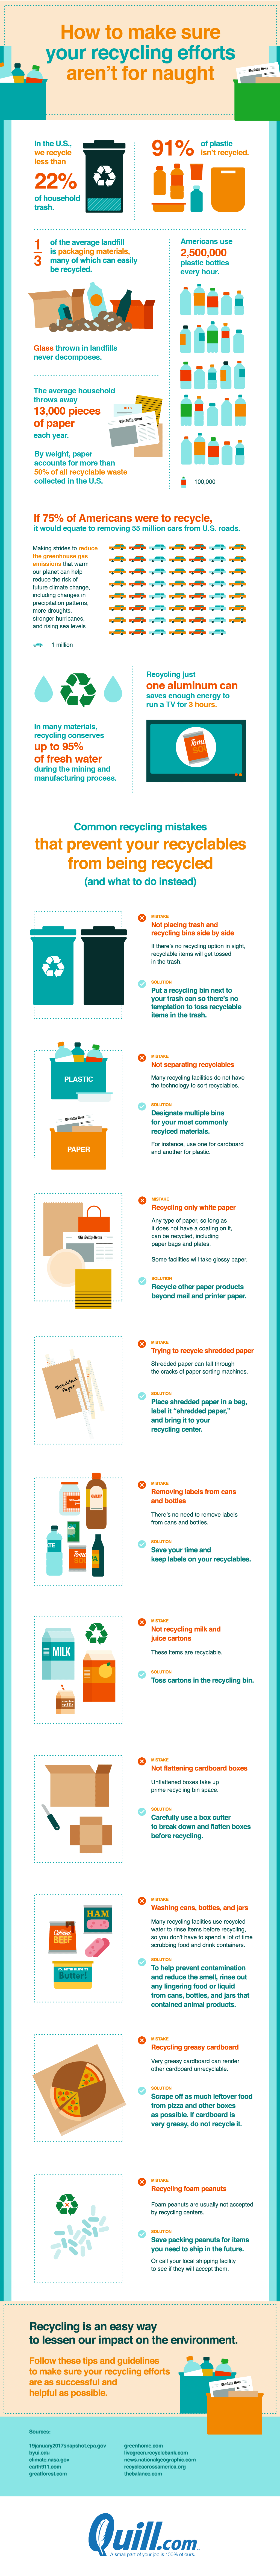 How to Make Sure Your Recycling Efforts Don't Go to Waste! - Infographic